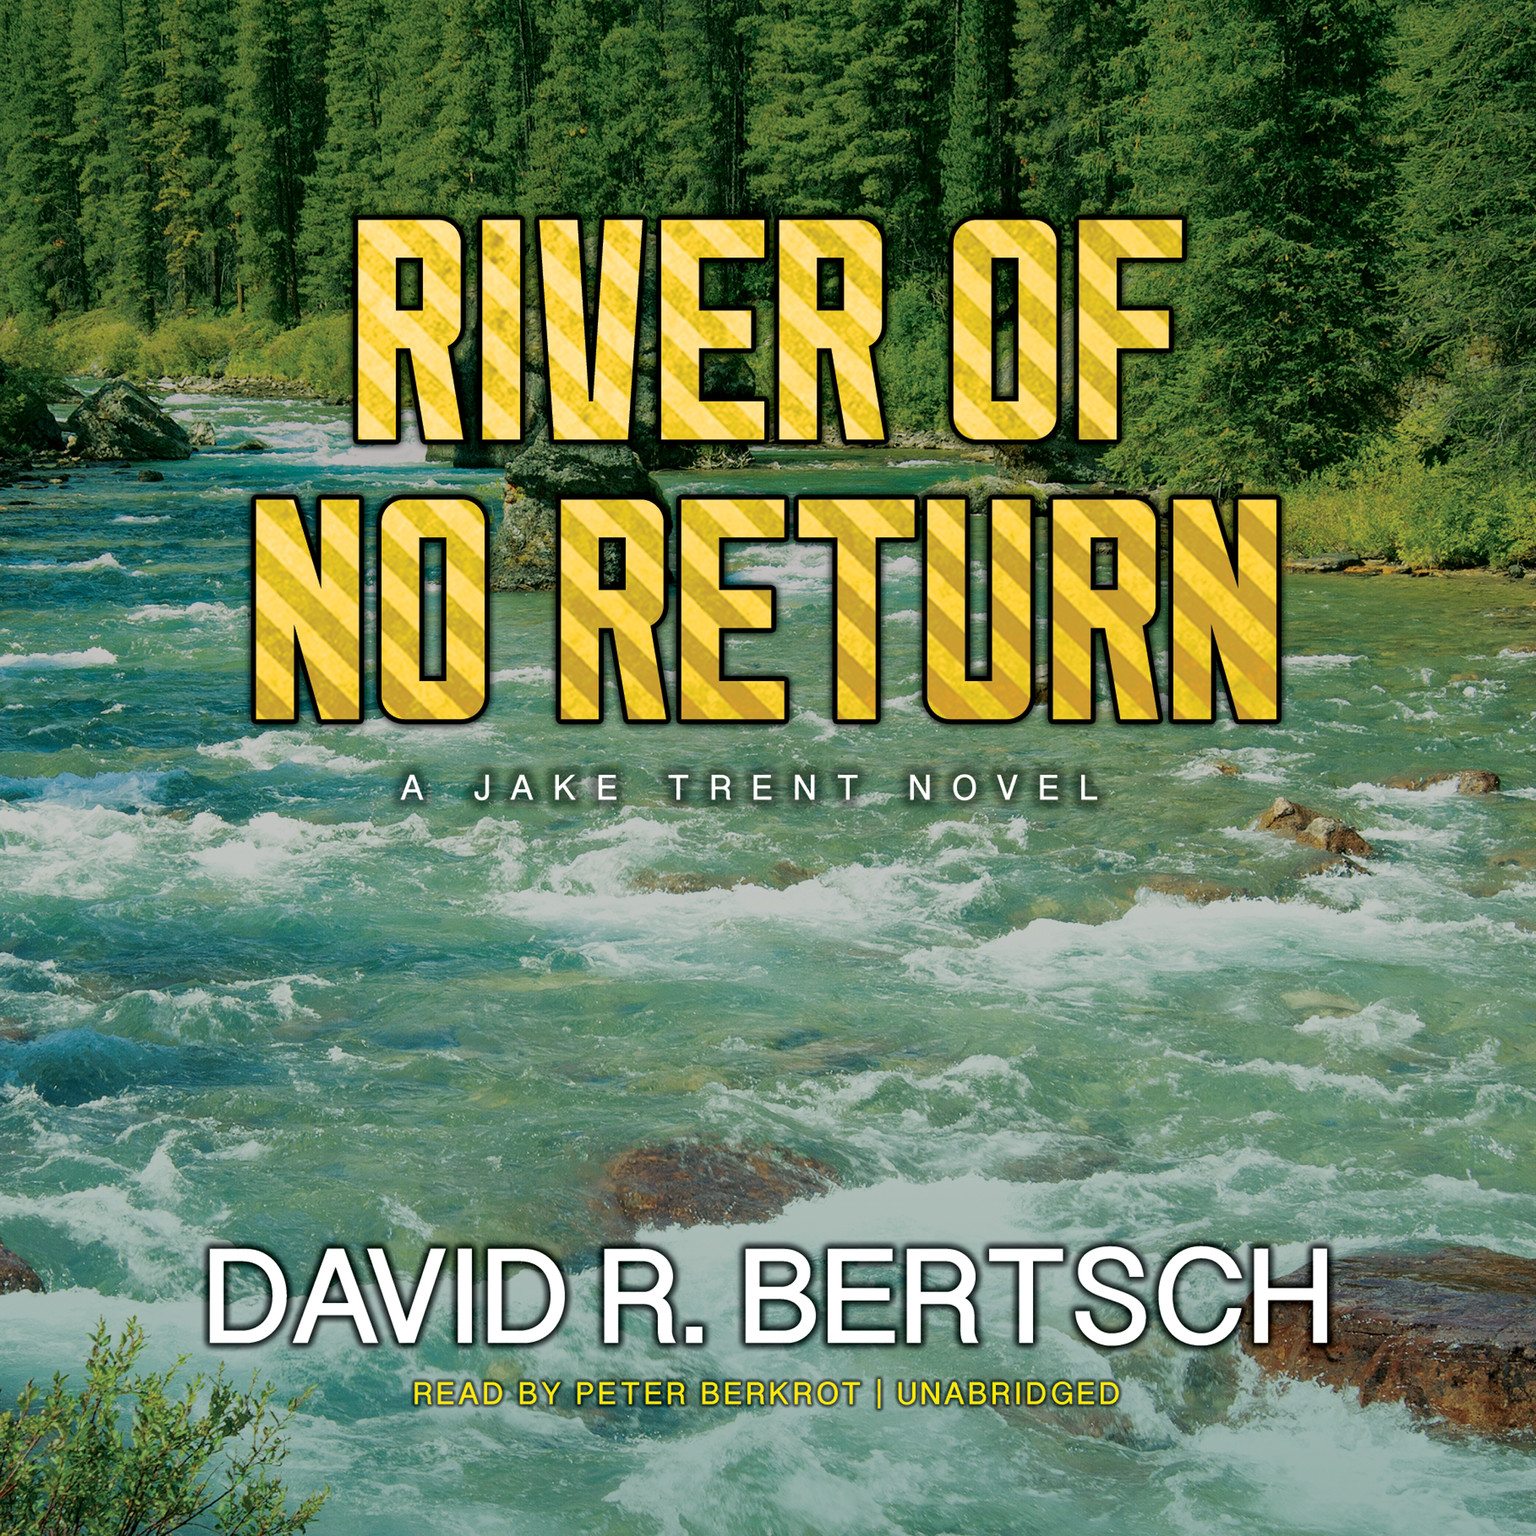 Printable River of No Return: A Jake Trent Novel Audiobook Cover Art